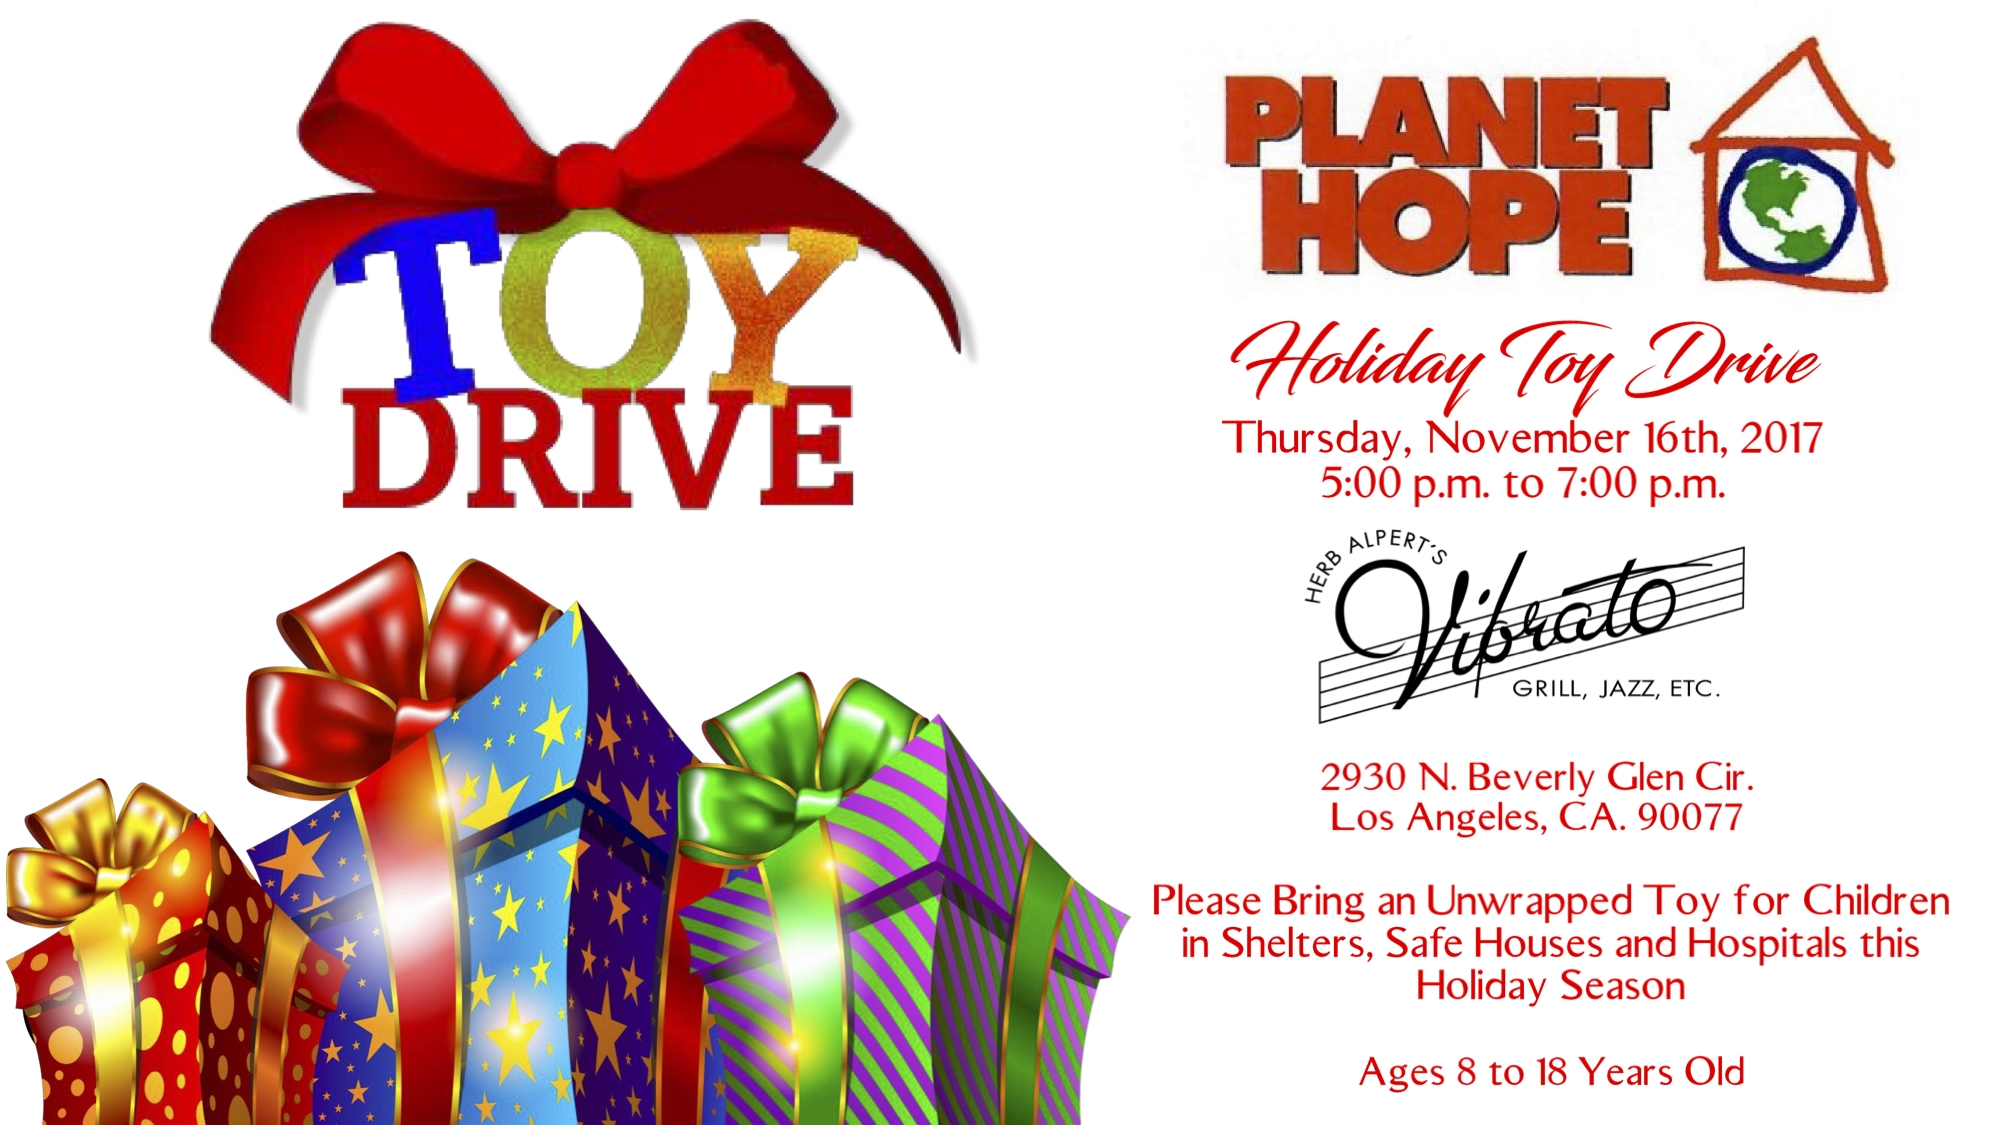 Vibrato Planet Hope Holiday Toy Drive.jpg